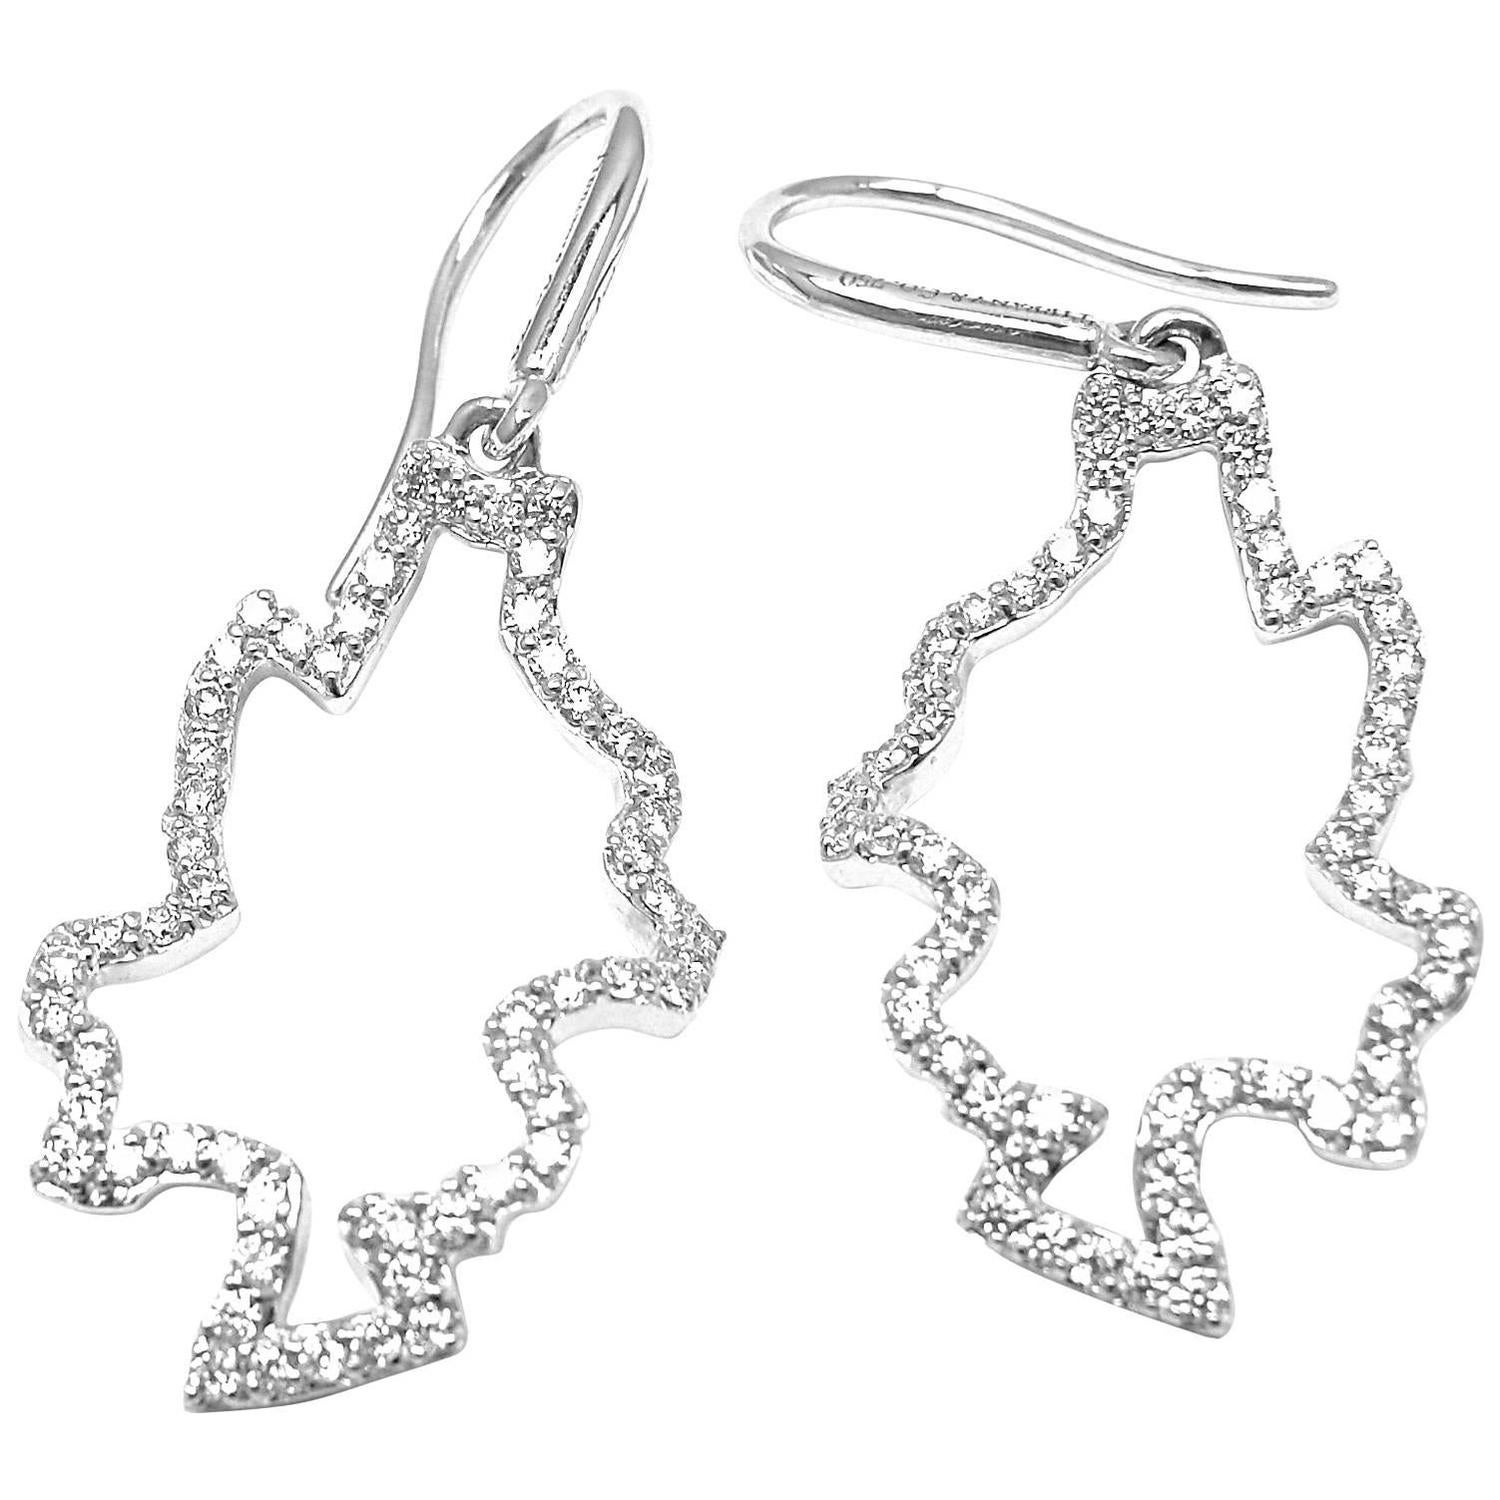 earrings wedding review prague co resize bands lifestyle stay tiffany diamond